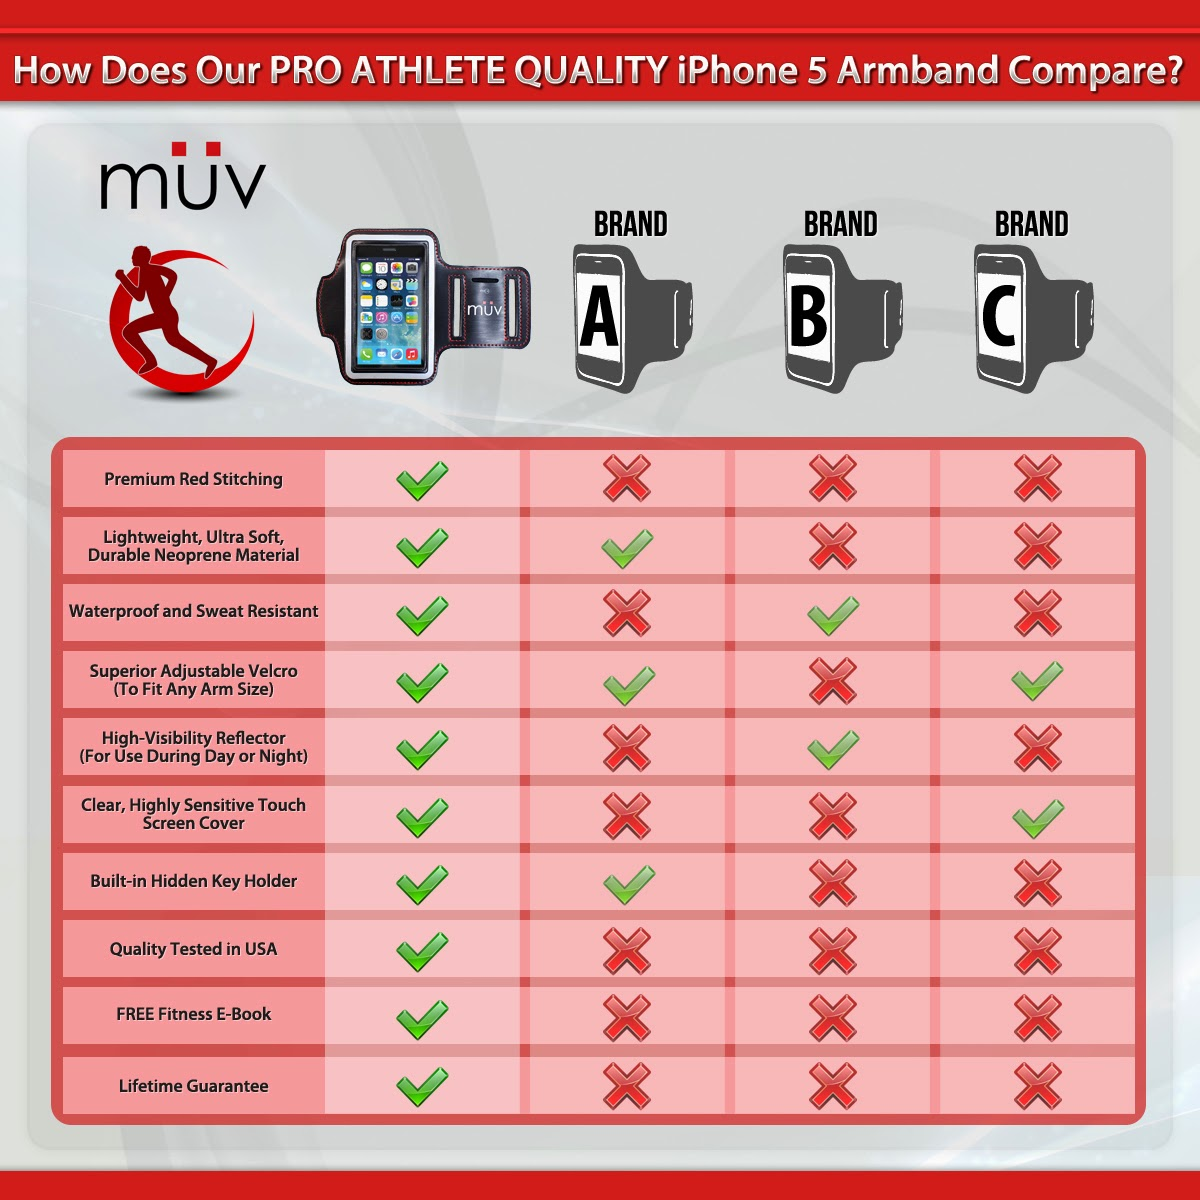 iPhone 5 Armband - Pro Athlete Quality #MuvUSA